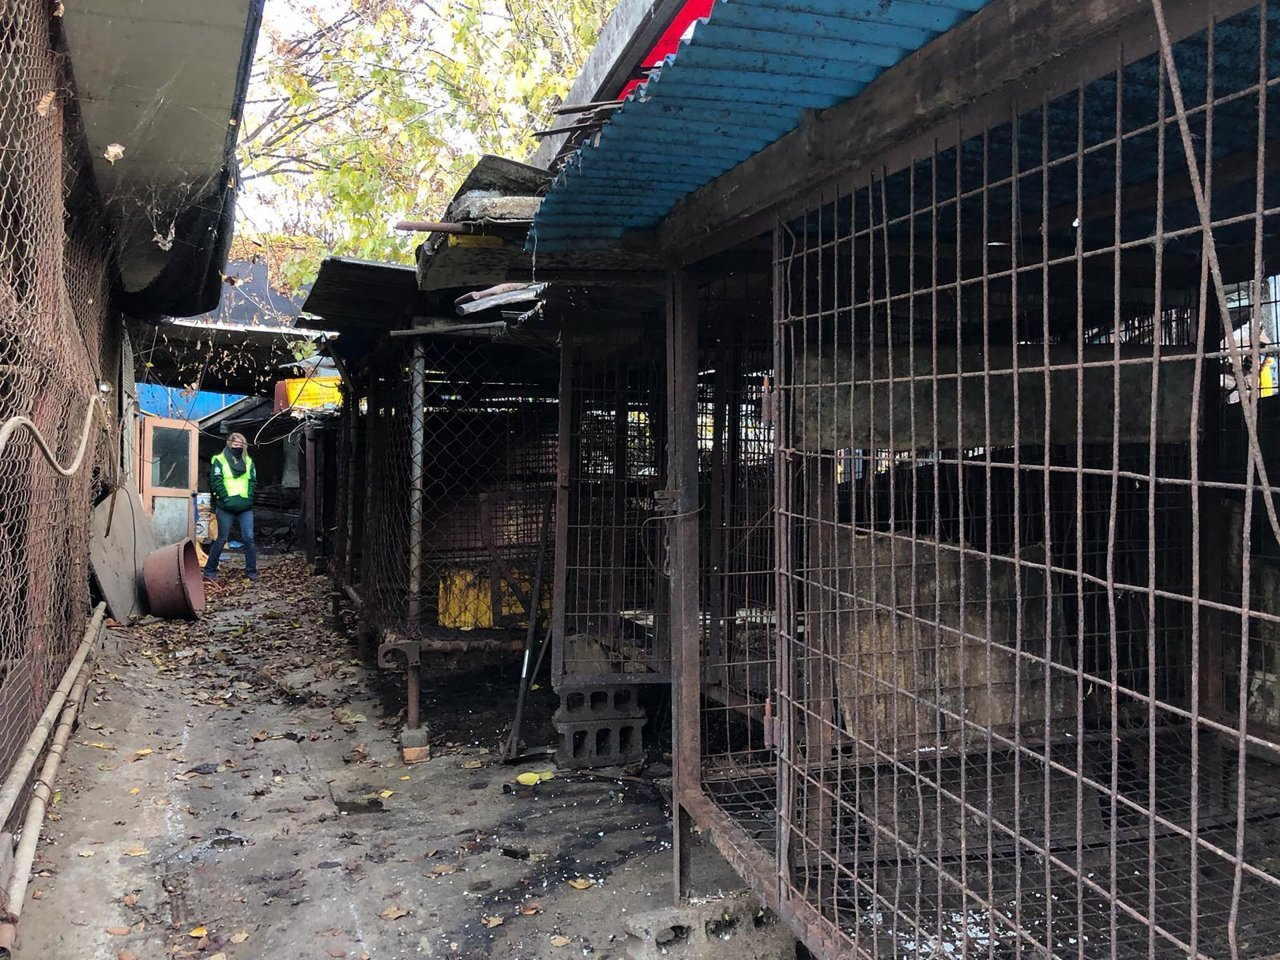 South Korea closes biggest dog slaughterhouse complex. South Korean officials on Thursday began to dismantle the country's largest canine slaughterhouse